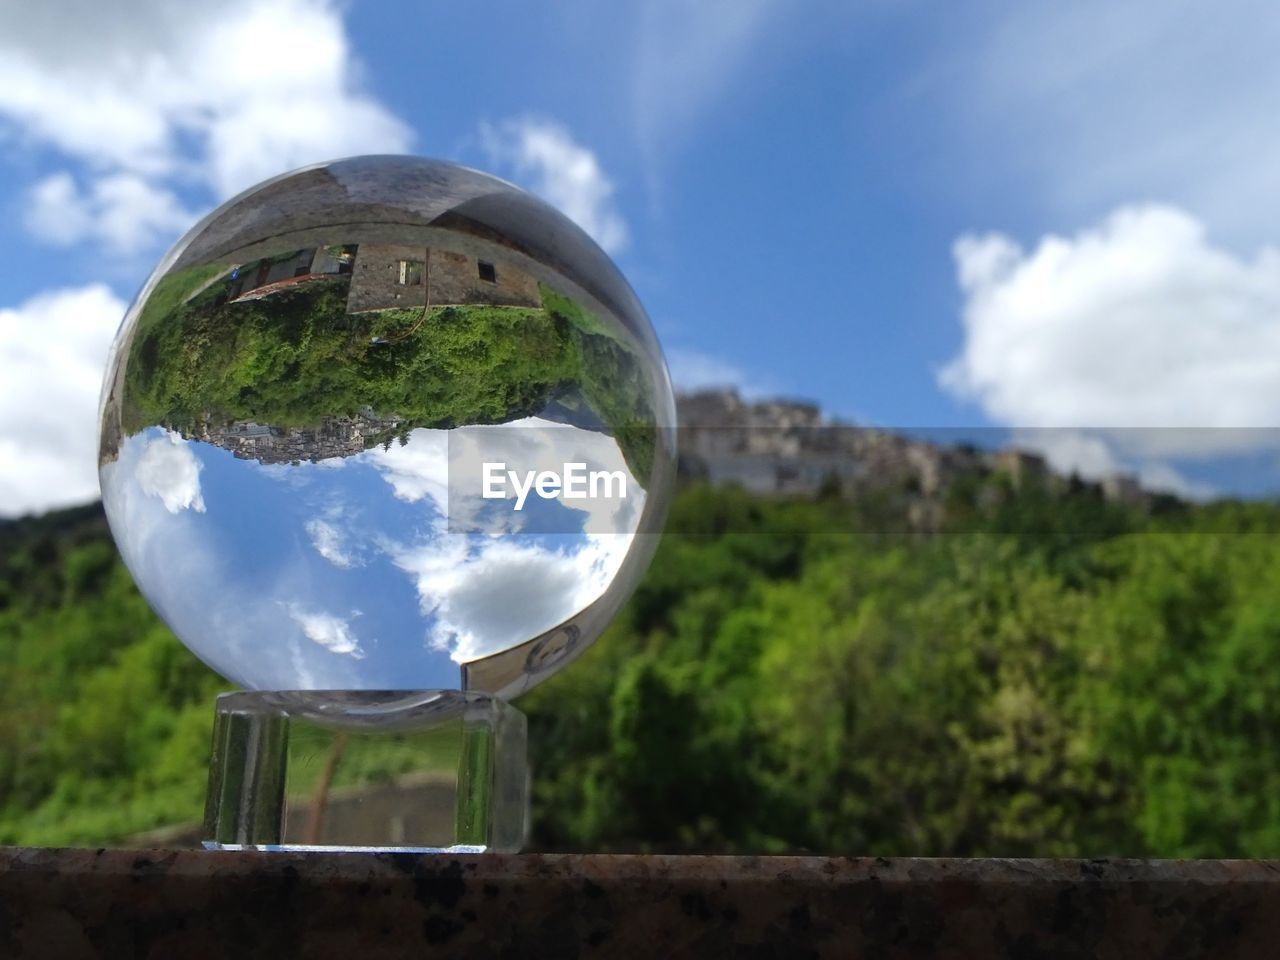 sky, cloud - sky, sphere, nature, focus on foreground, glass - material, transparent, day, reflection, no people, close-up, outdoors, plant, tree, shape, geometric shape, ball, environment, circle, crystal ball